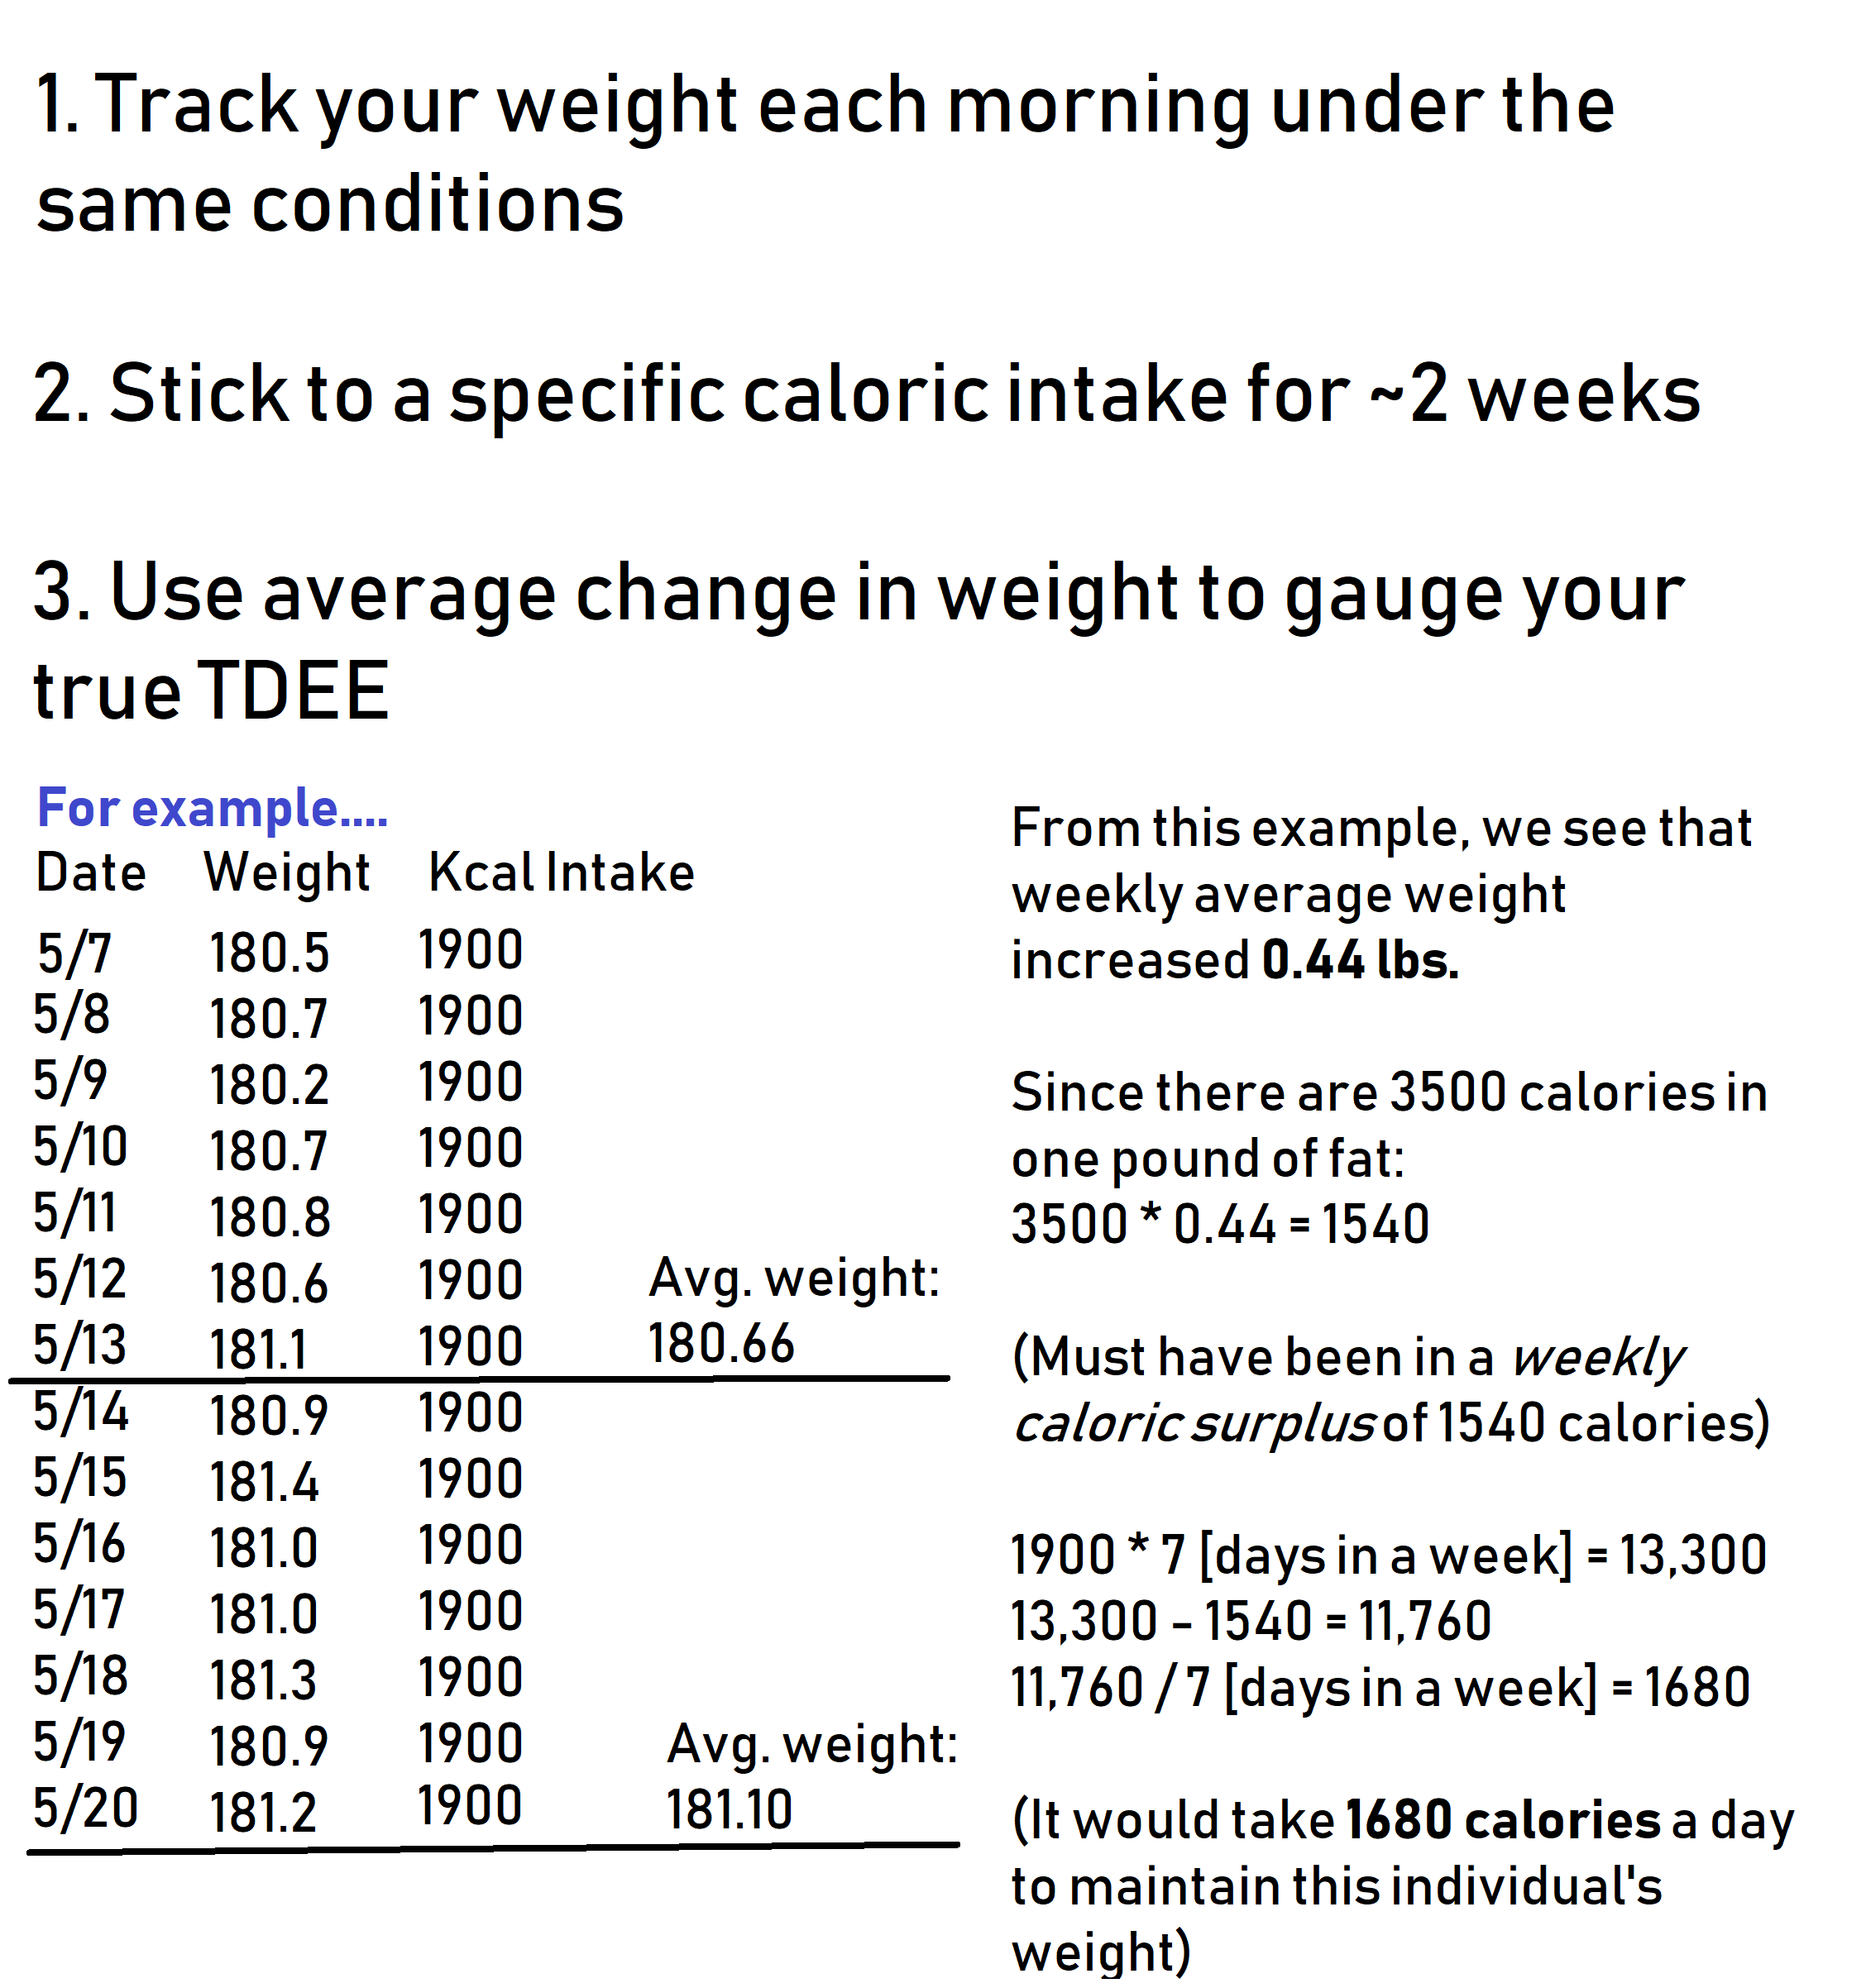 "You may be  calling  your diet ""low calorie,"" but this is a subjective term if it doesn't have any data to back it up.  What we have done here is tracked caloric intake and compared it to average weekly weight for two weeks, eventually rendering a  total daily energy expenditure (TDEE)  of  1680 calories .  Alternatively, you could use any free online TDEE calculator, keeping in mind there will inherently be some degree of inaccuracy here."